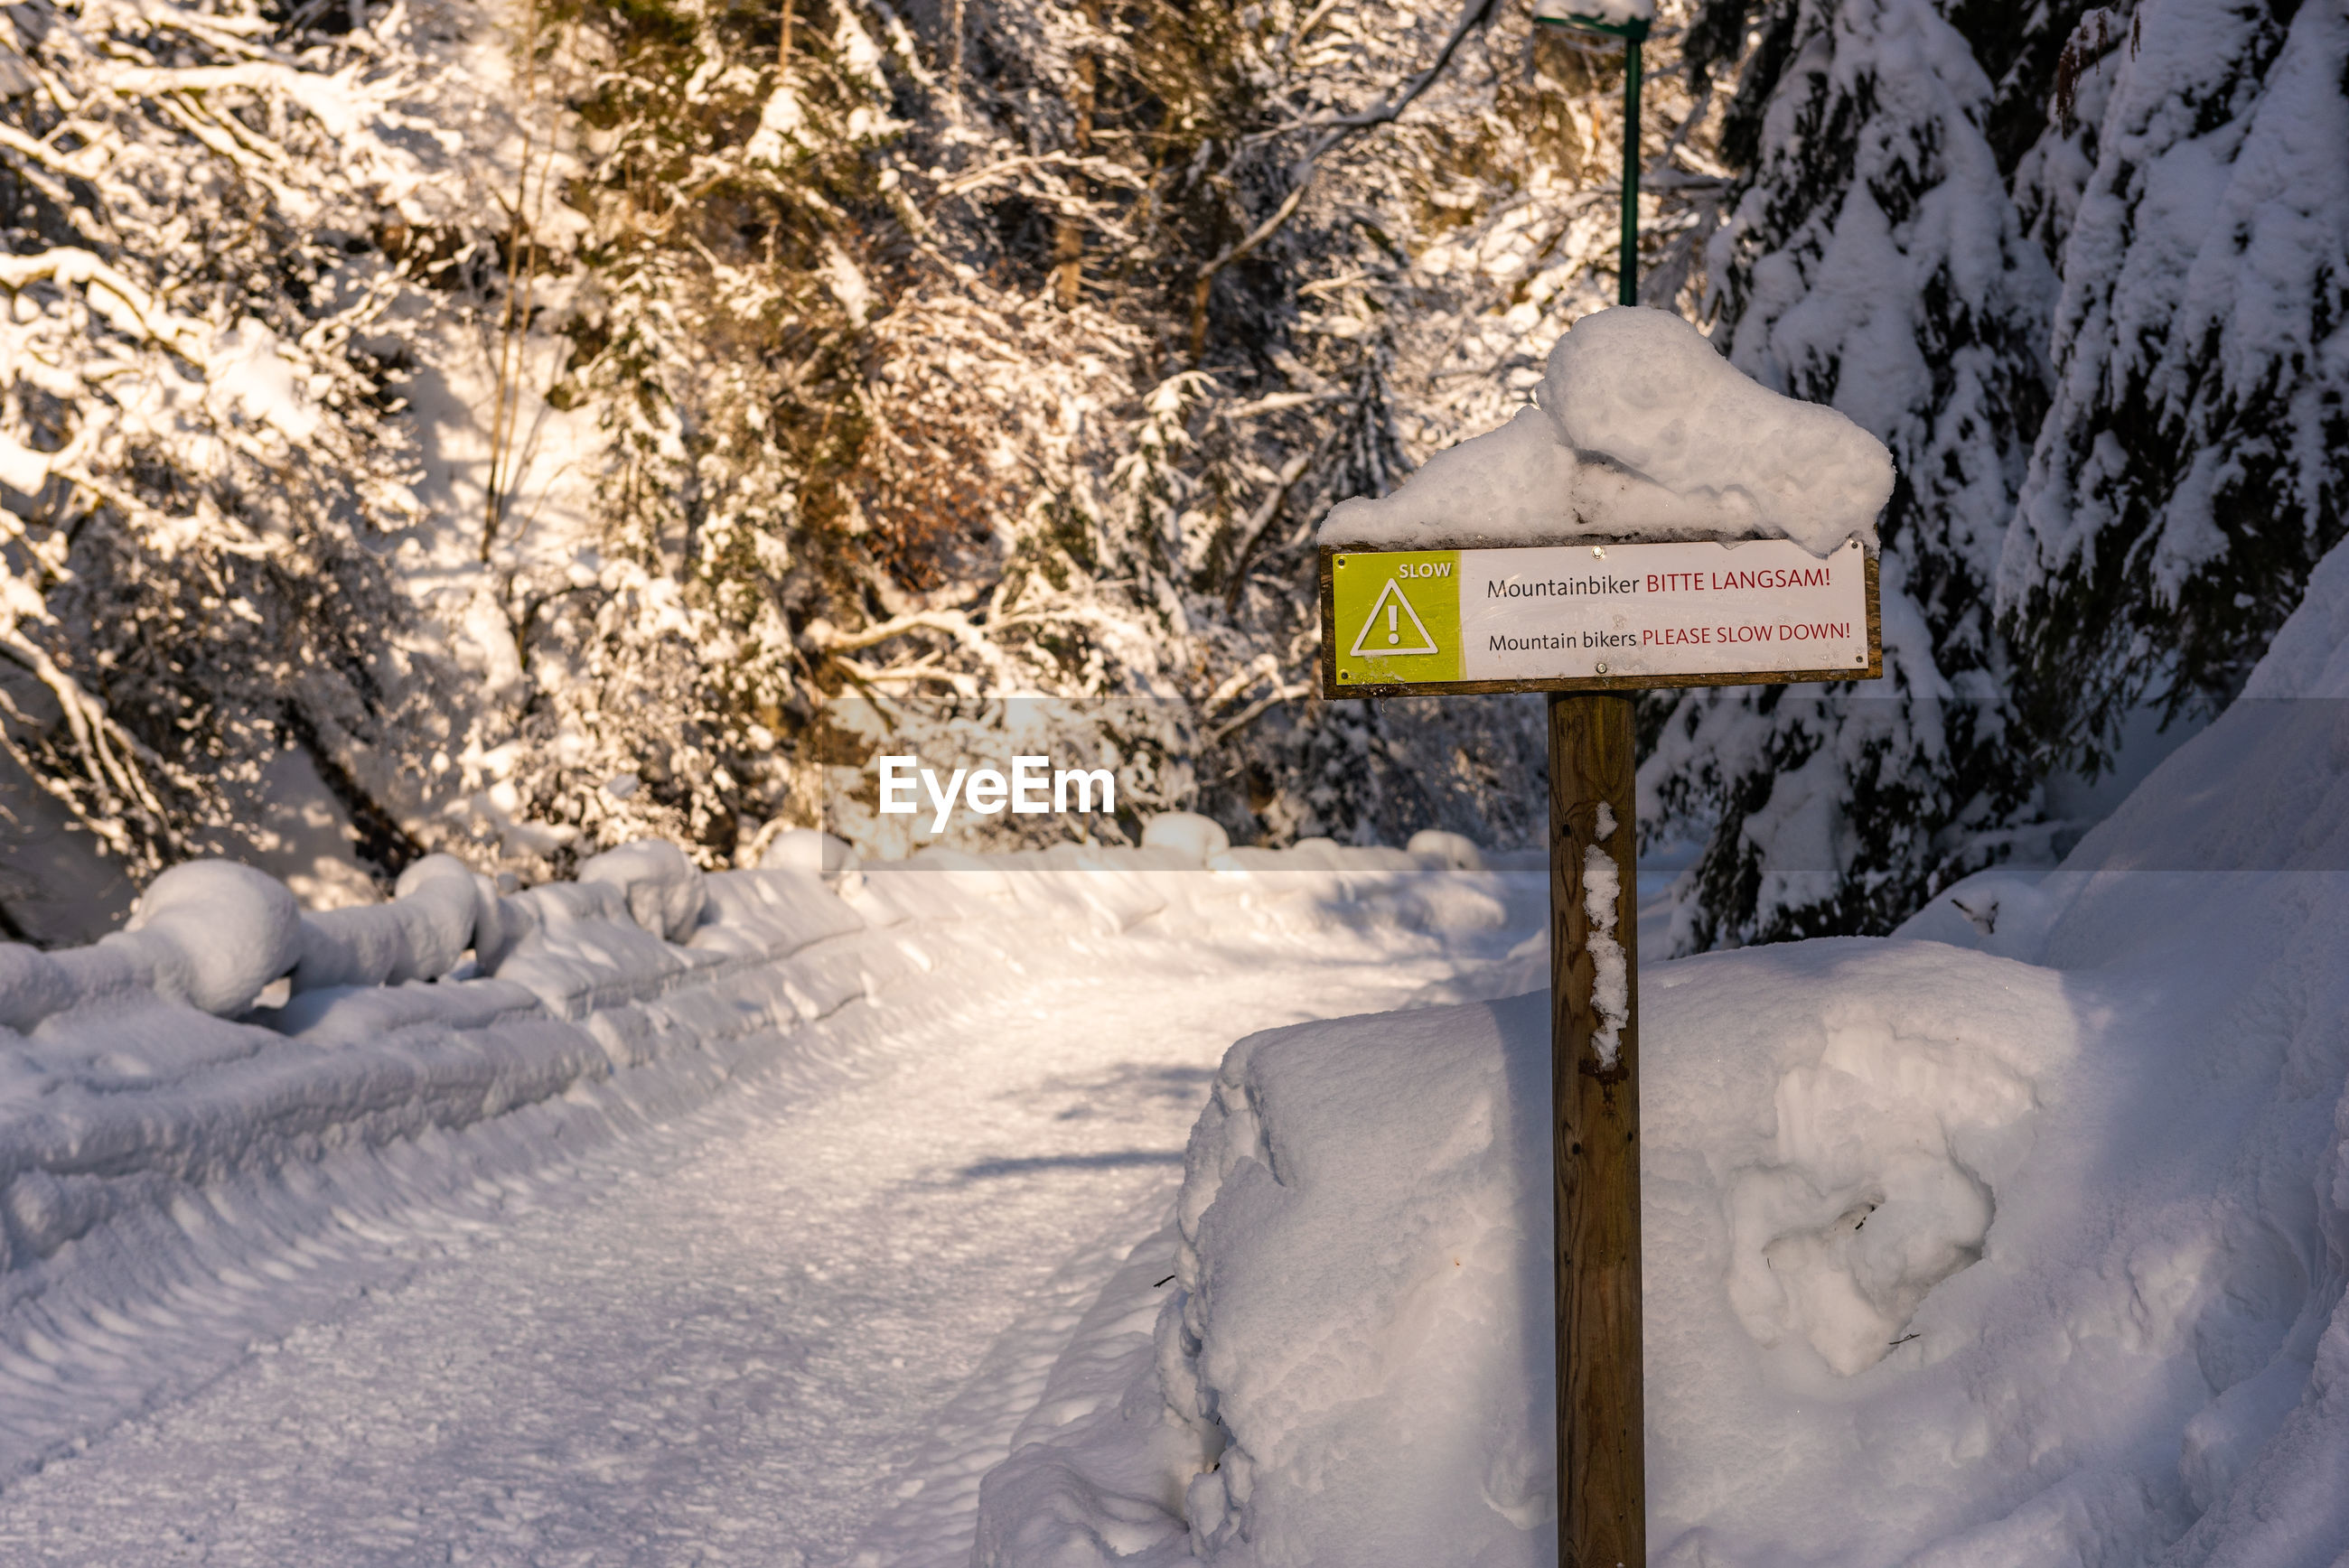 Mountain bikers, please slow down. traffic sign, warning, winter services. austria